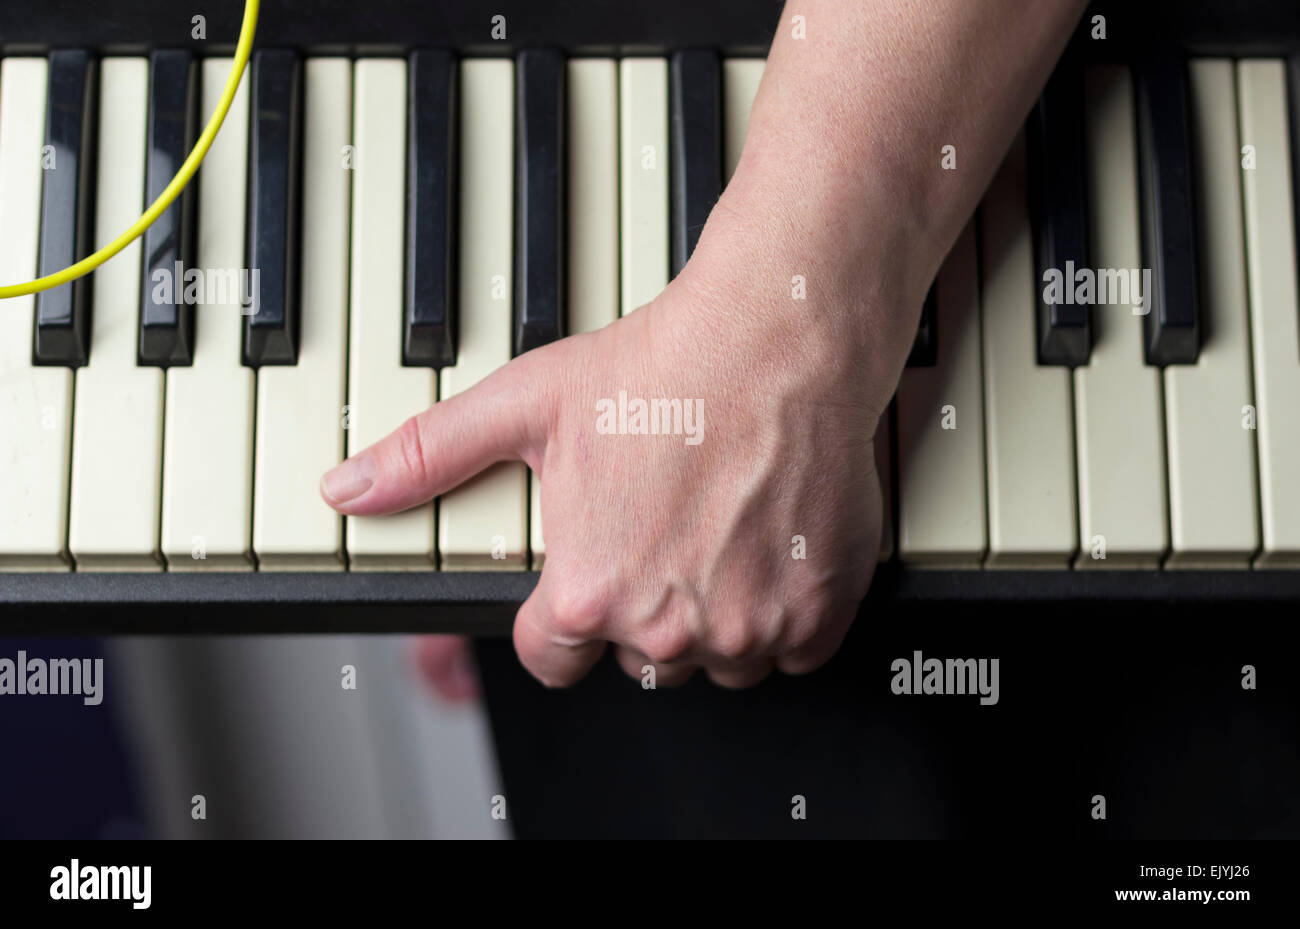 Carrying a synthesizer keyboard - Stock Image